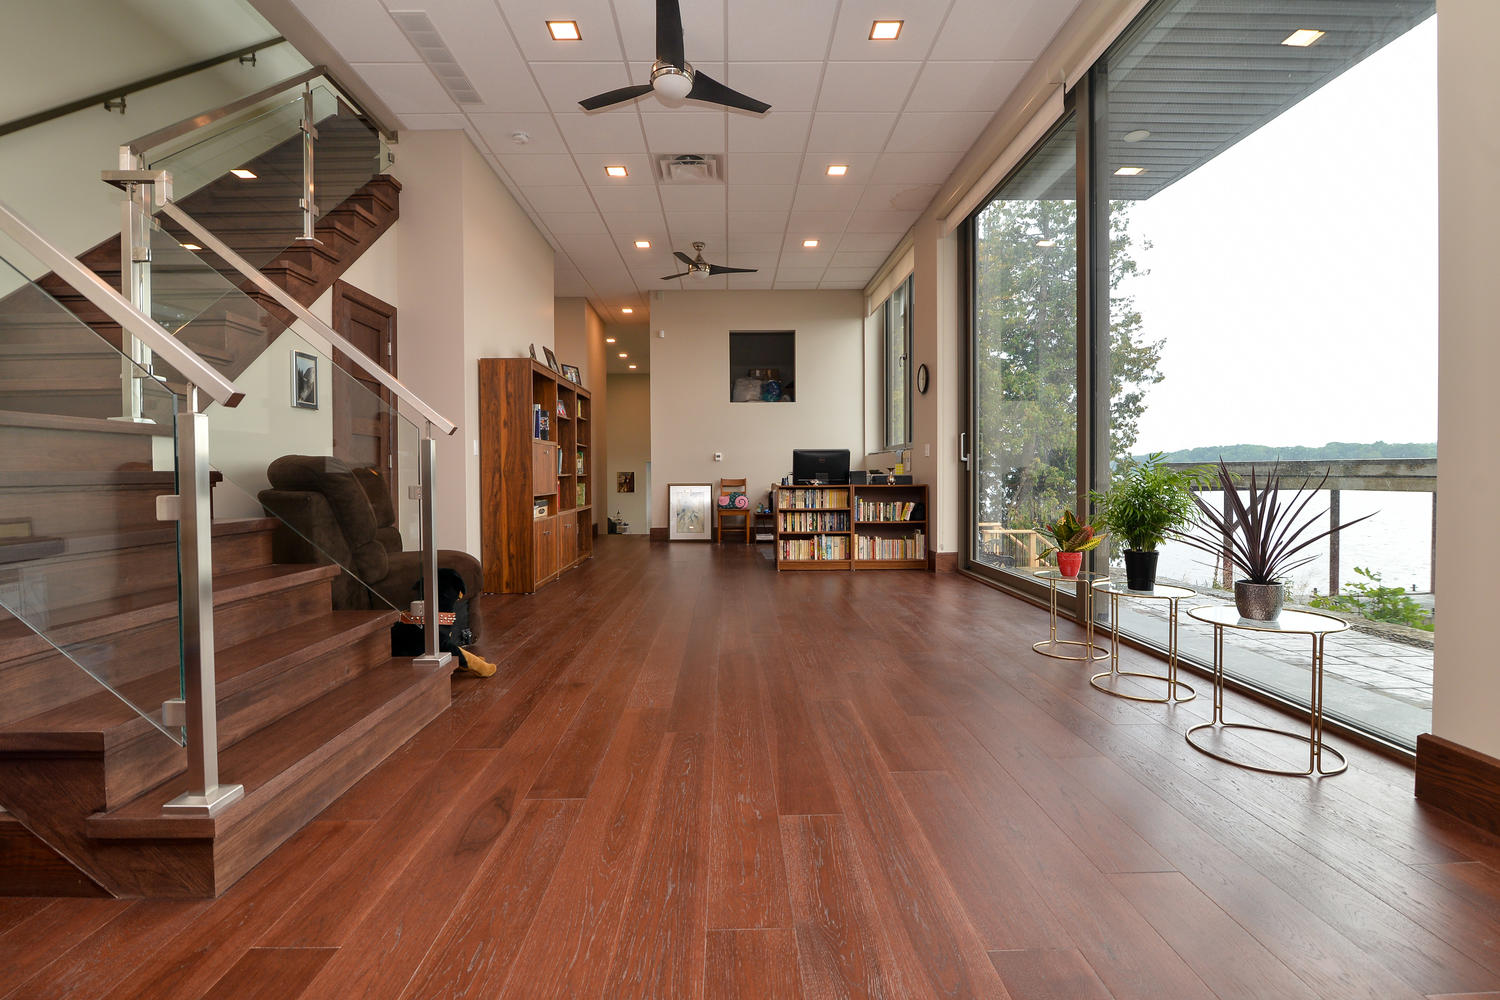 Hickory Wood Flooring best in the world